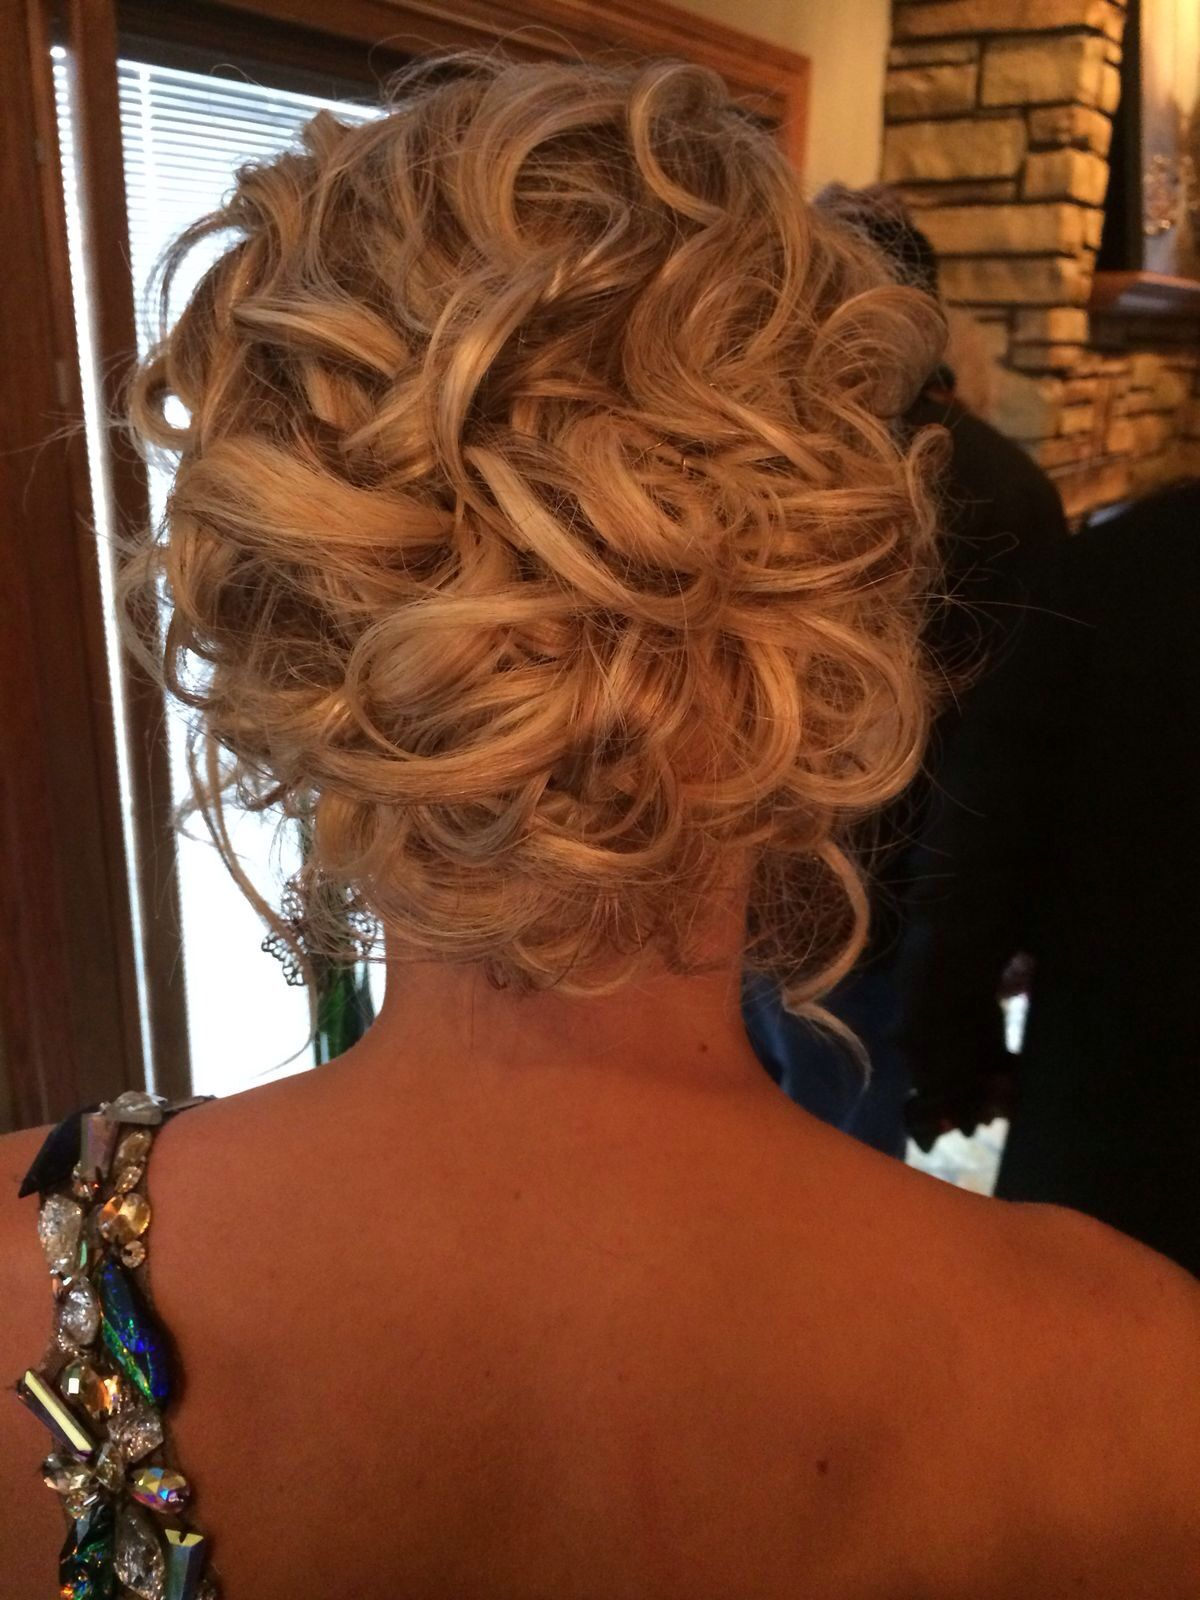 Prom hair updo | Hairstyles | Pinterest